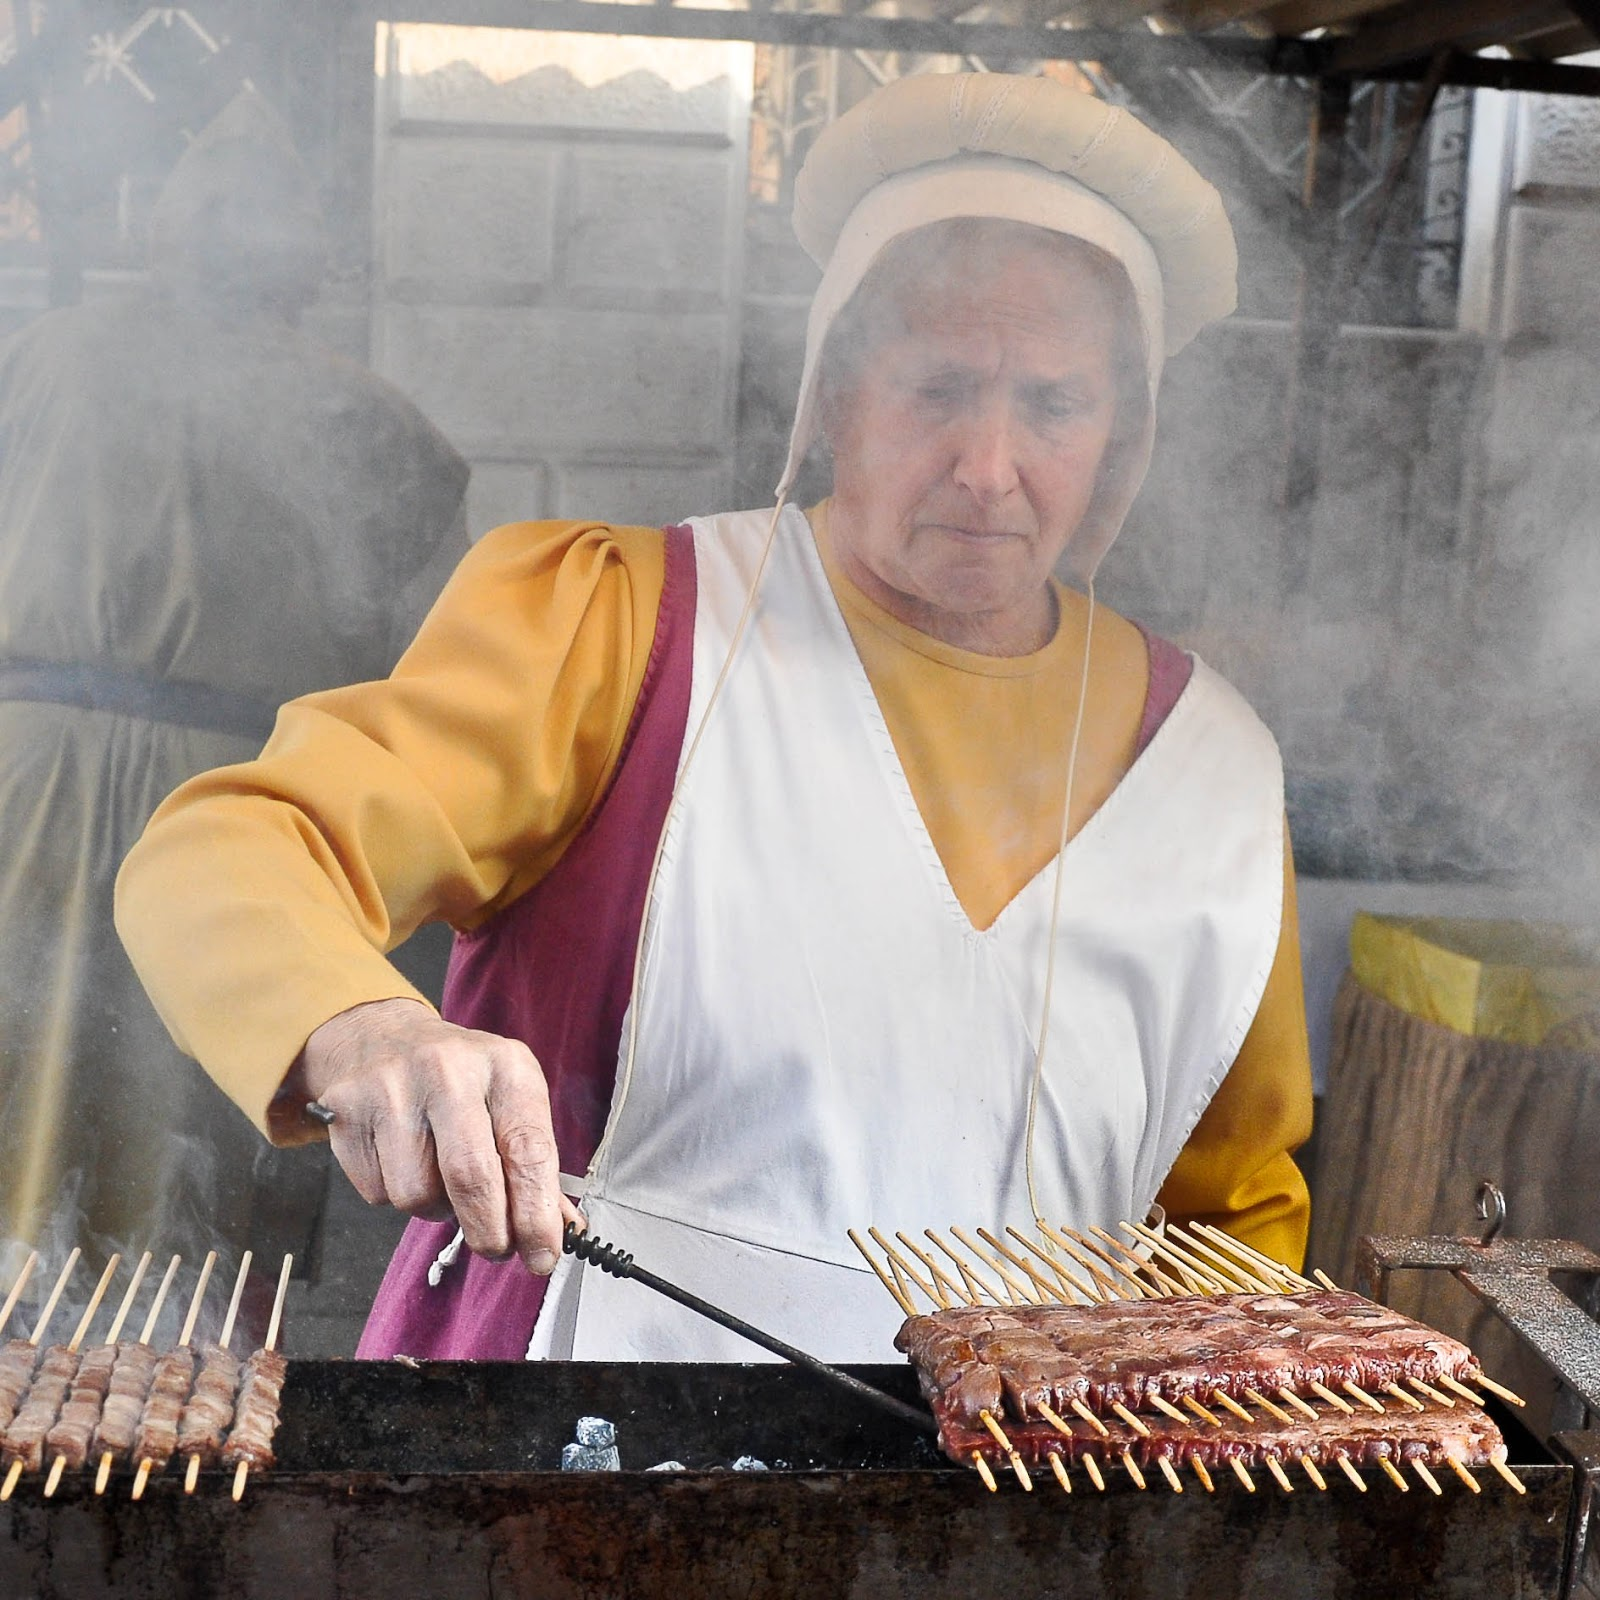 Roasting traditional Italian lamb shish kebabs on coals, Thiene, Veneto, Italy